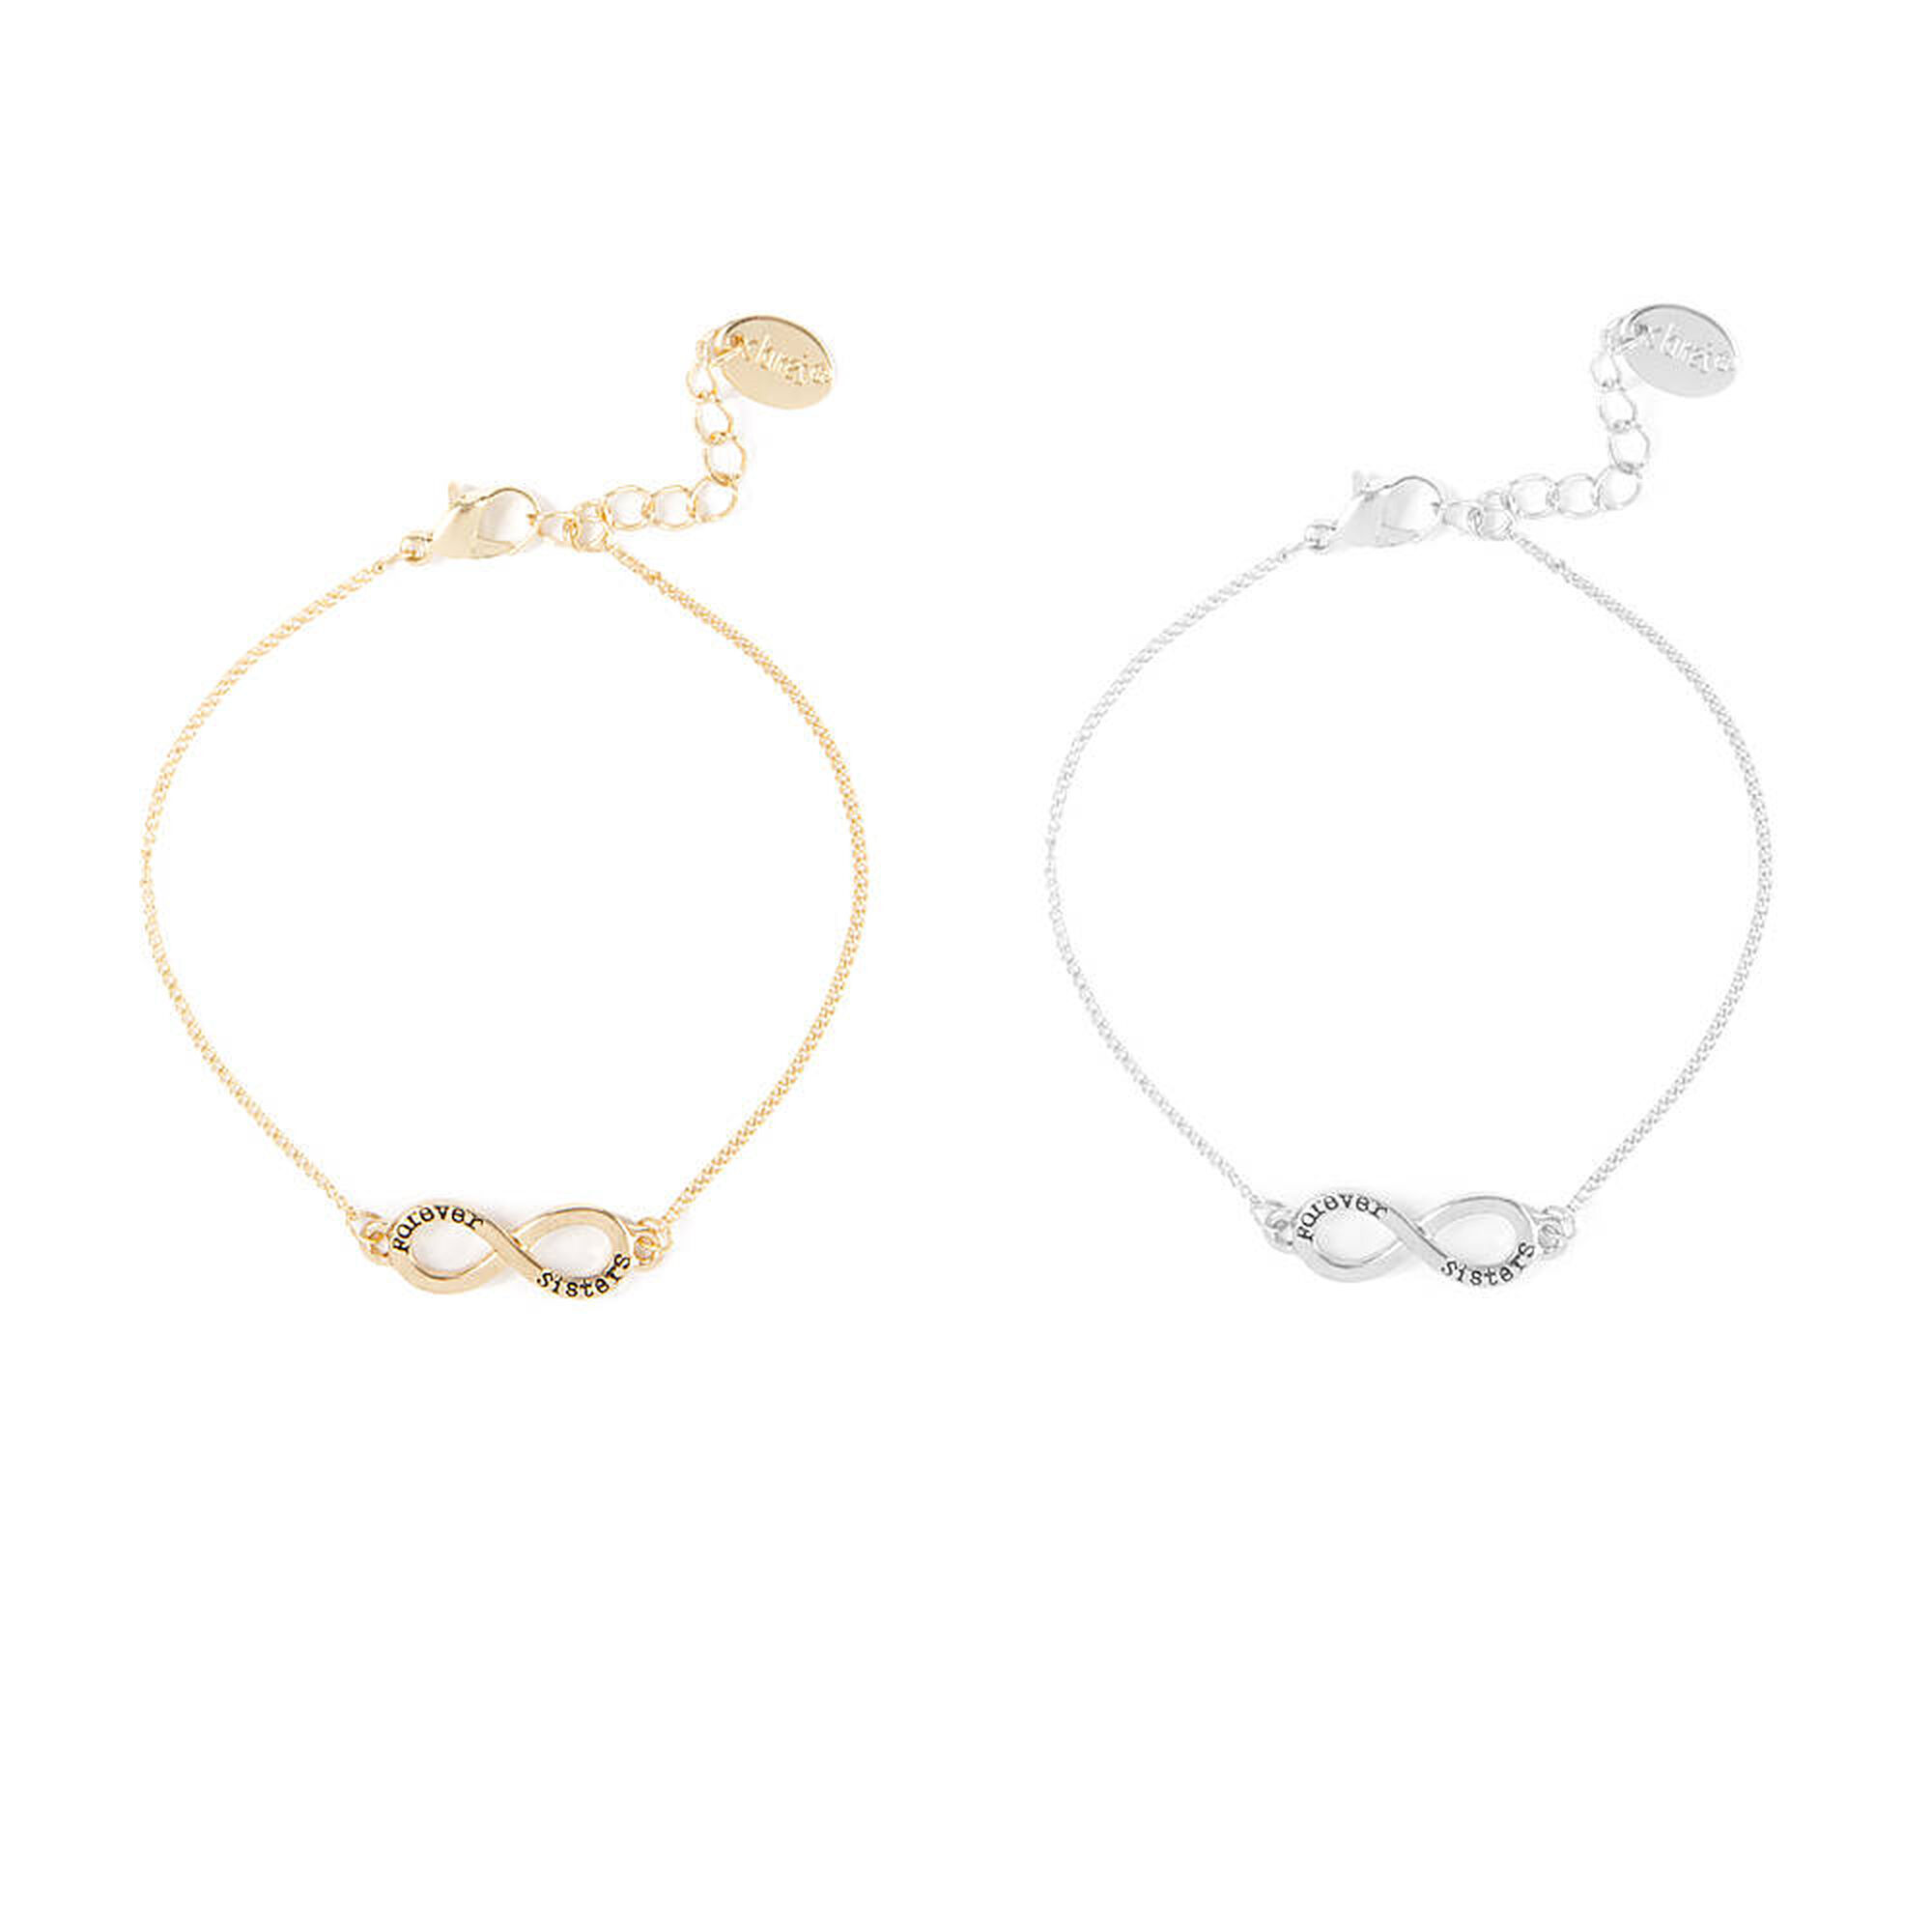 upscale infinity subsampling shop product bracelet gold crop number the and co tiffany scale cuff false diamond jewellery lucky editor